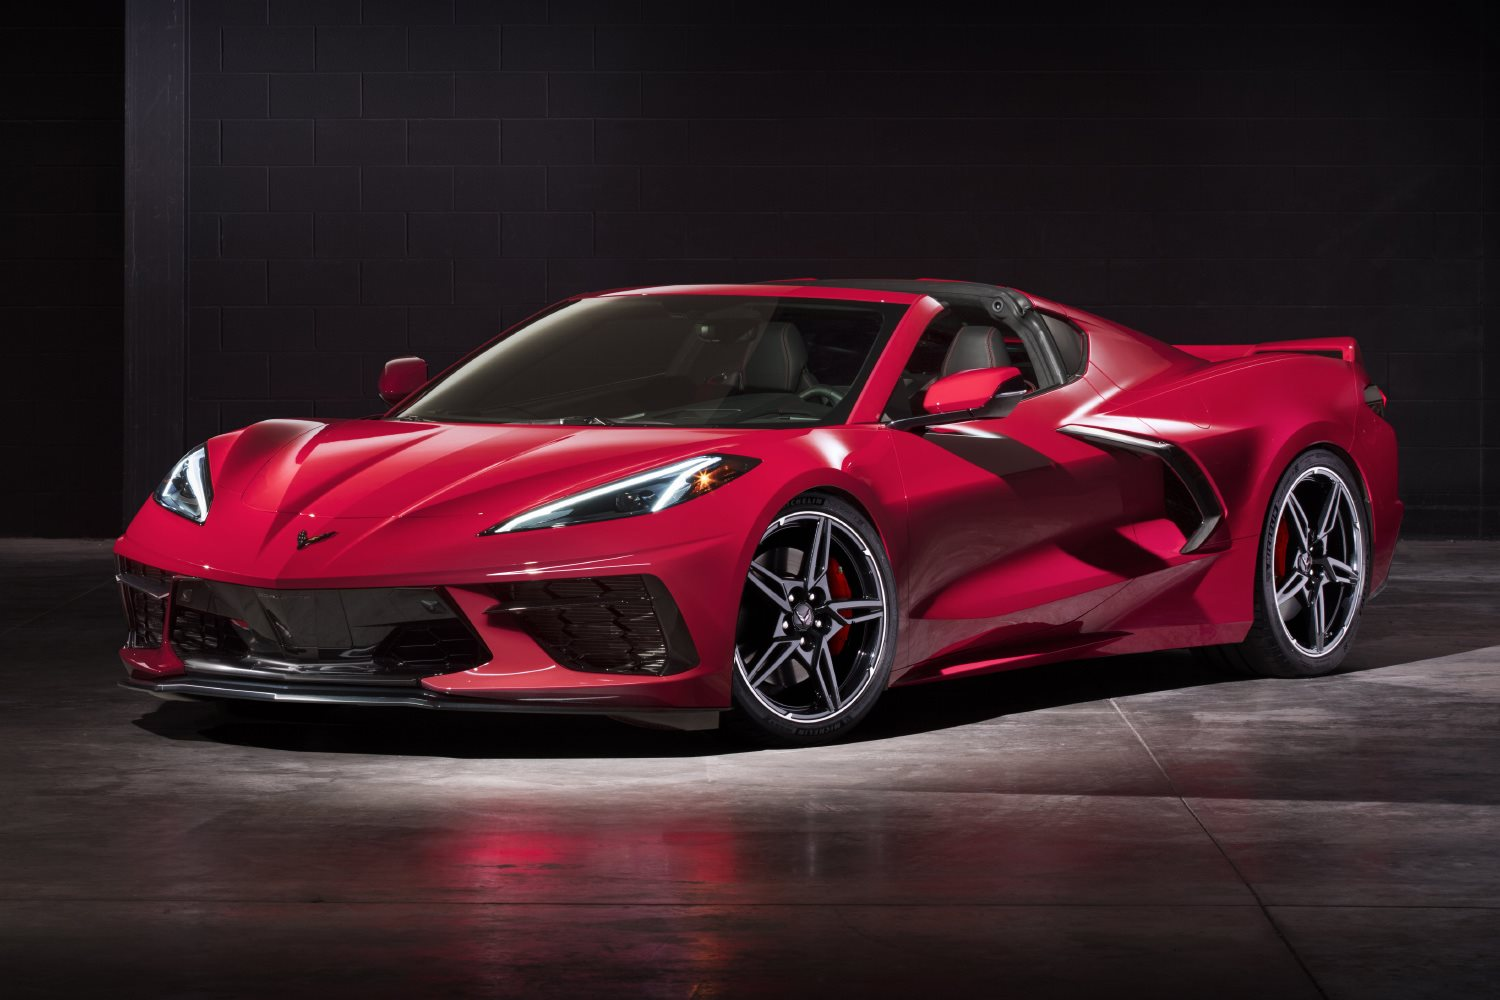 All the details you don't know about Holden's Corvette C8